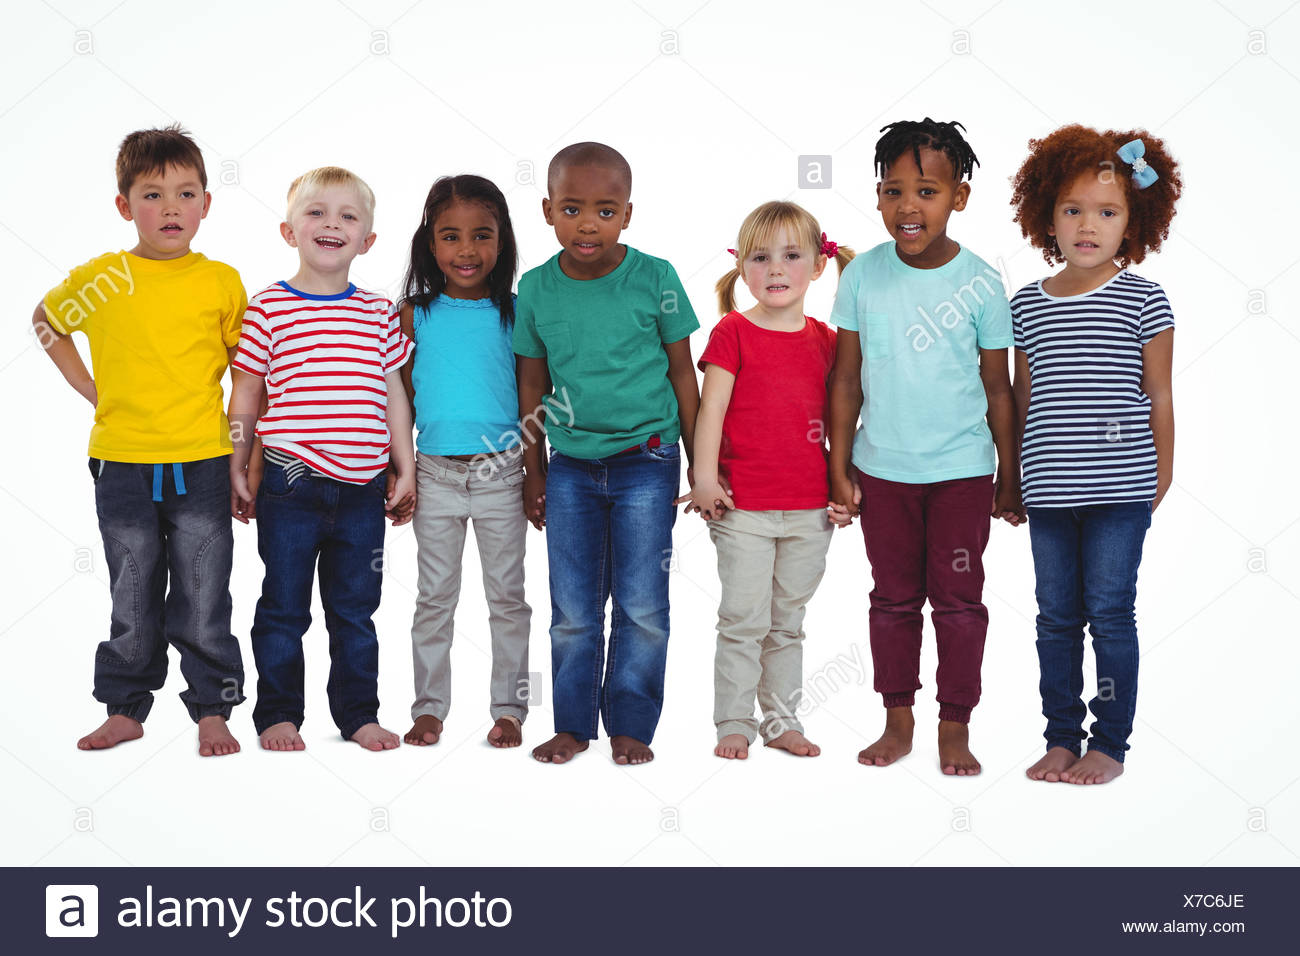 Cute barefooted kids looking at camera - Stock Image